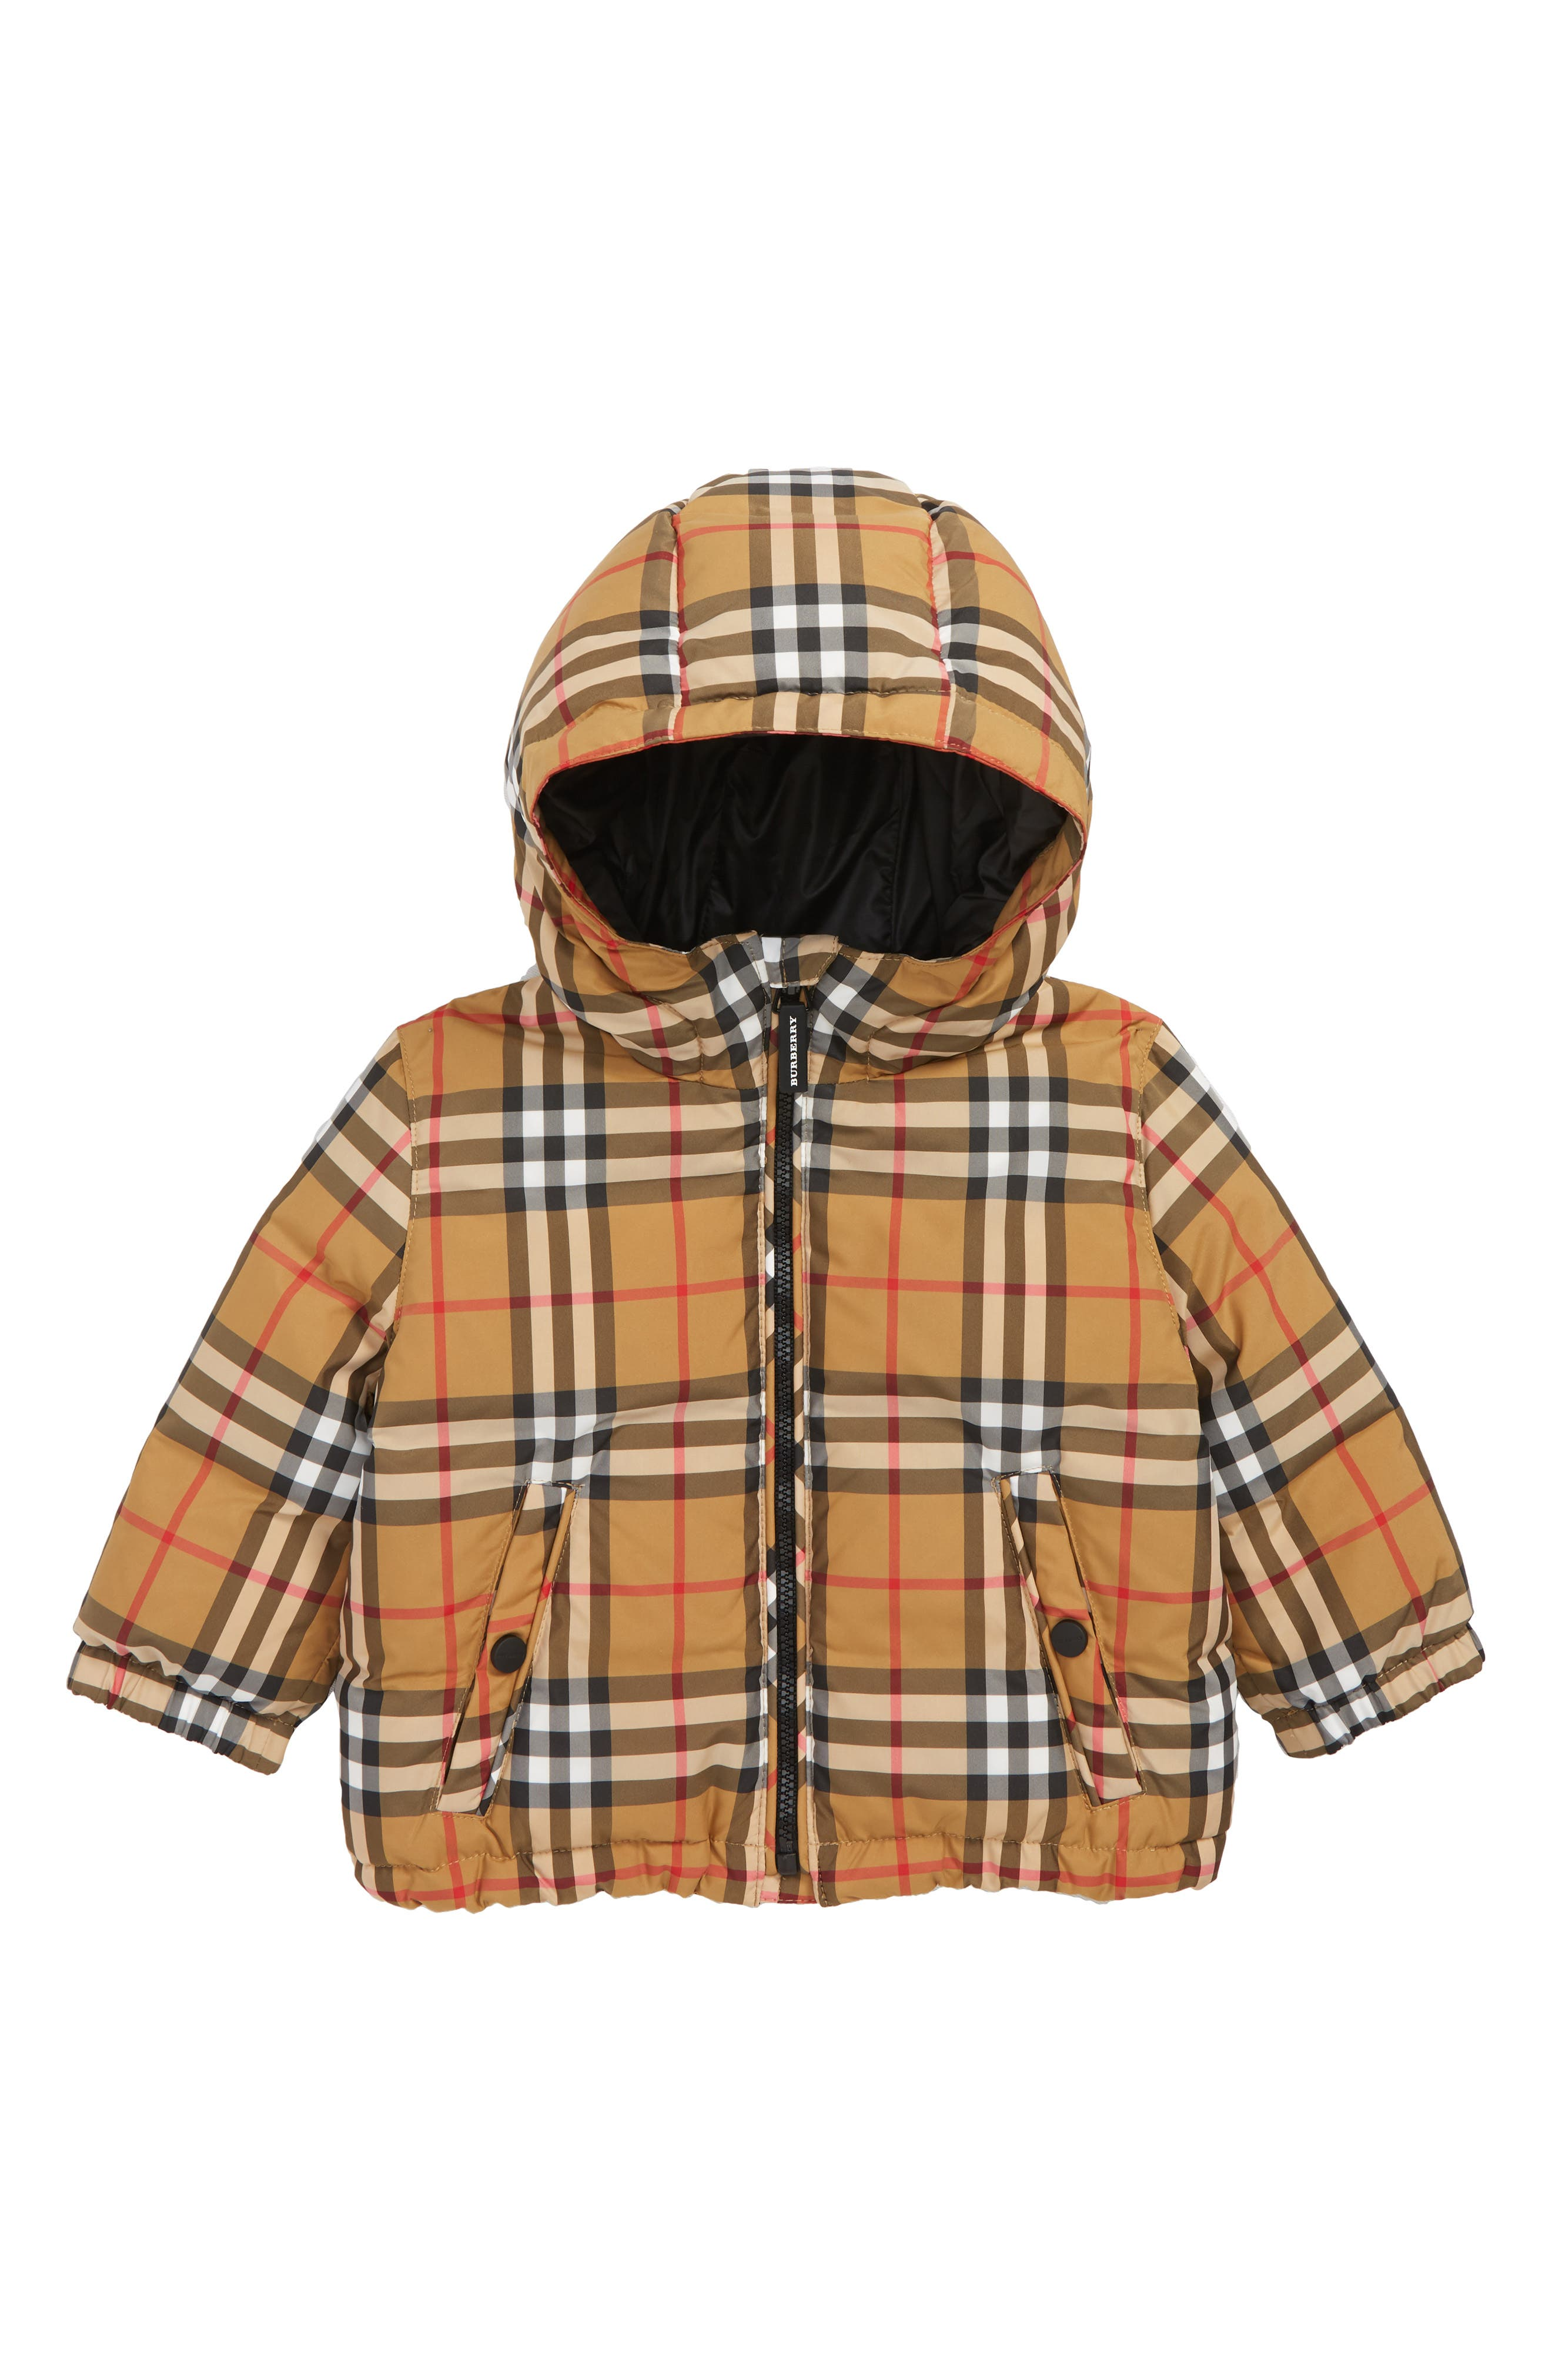 BURBERRY, Check Hooded Down Coat, Main thumbnail 1, color, 701